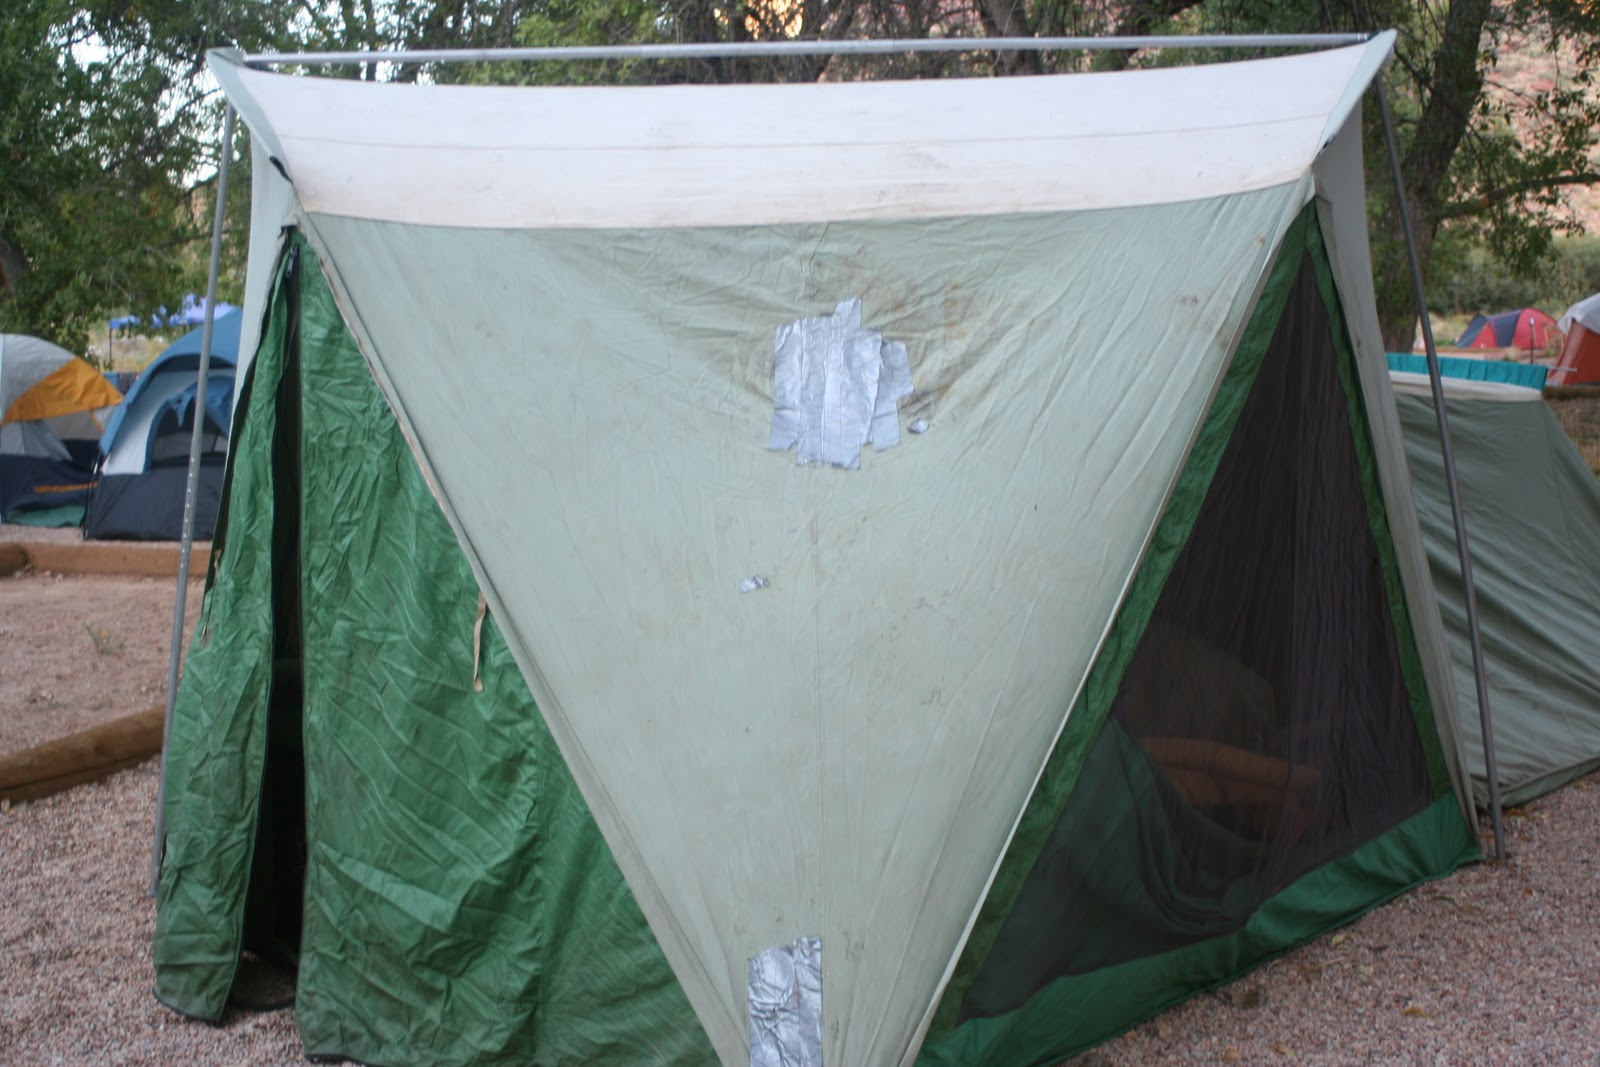 duct tape on tent